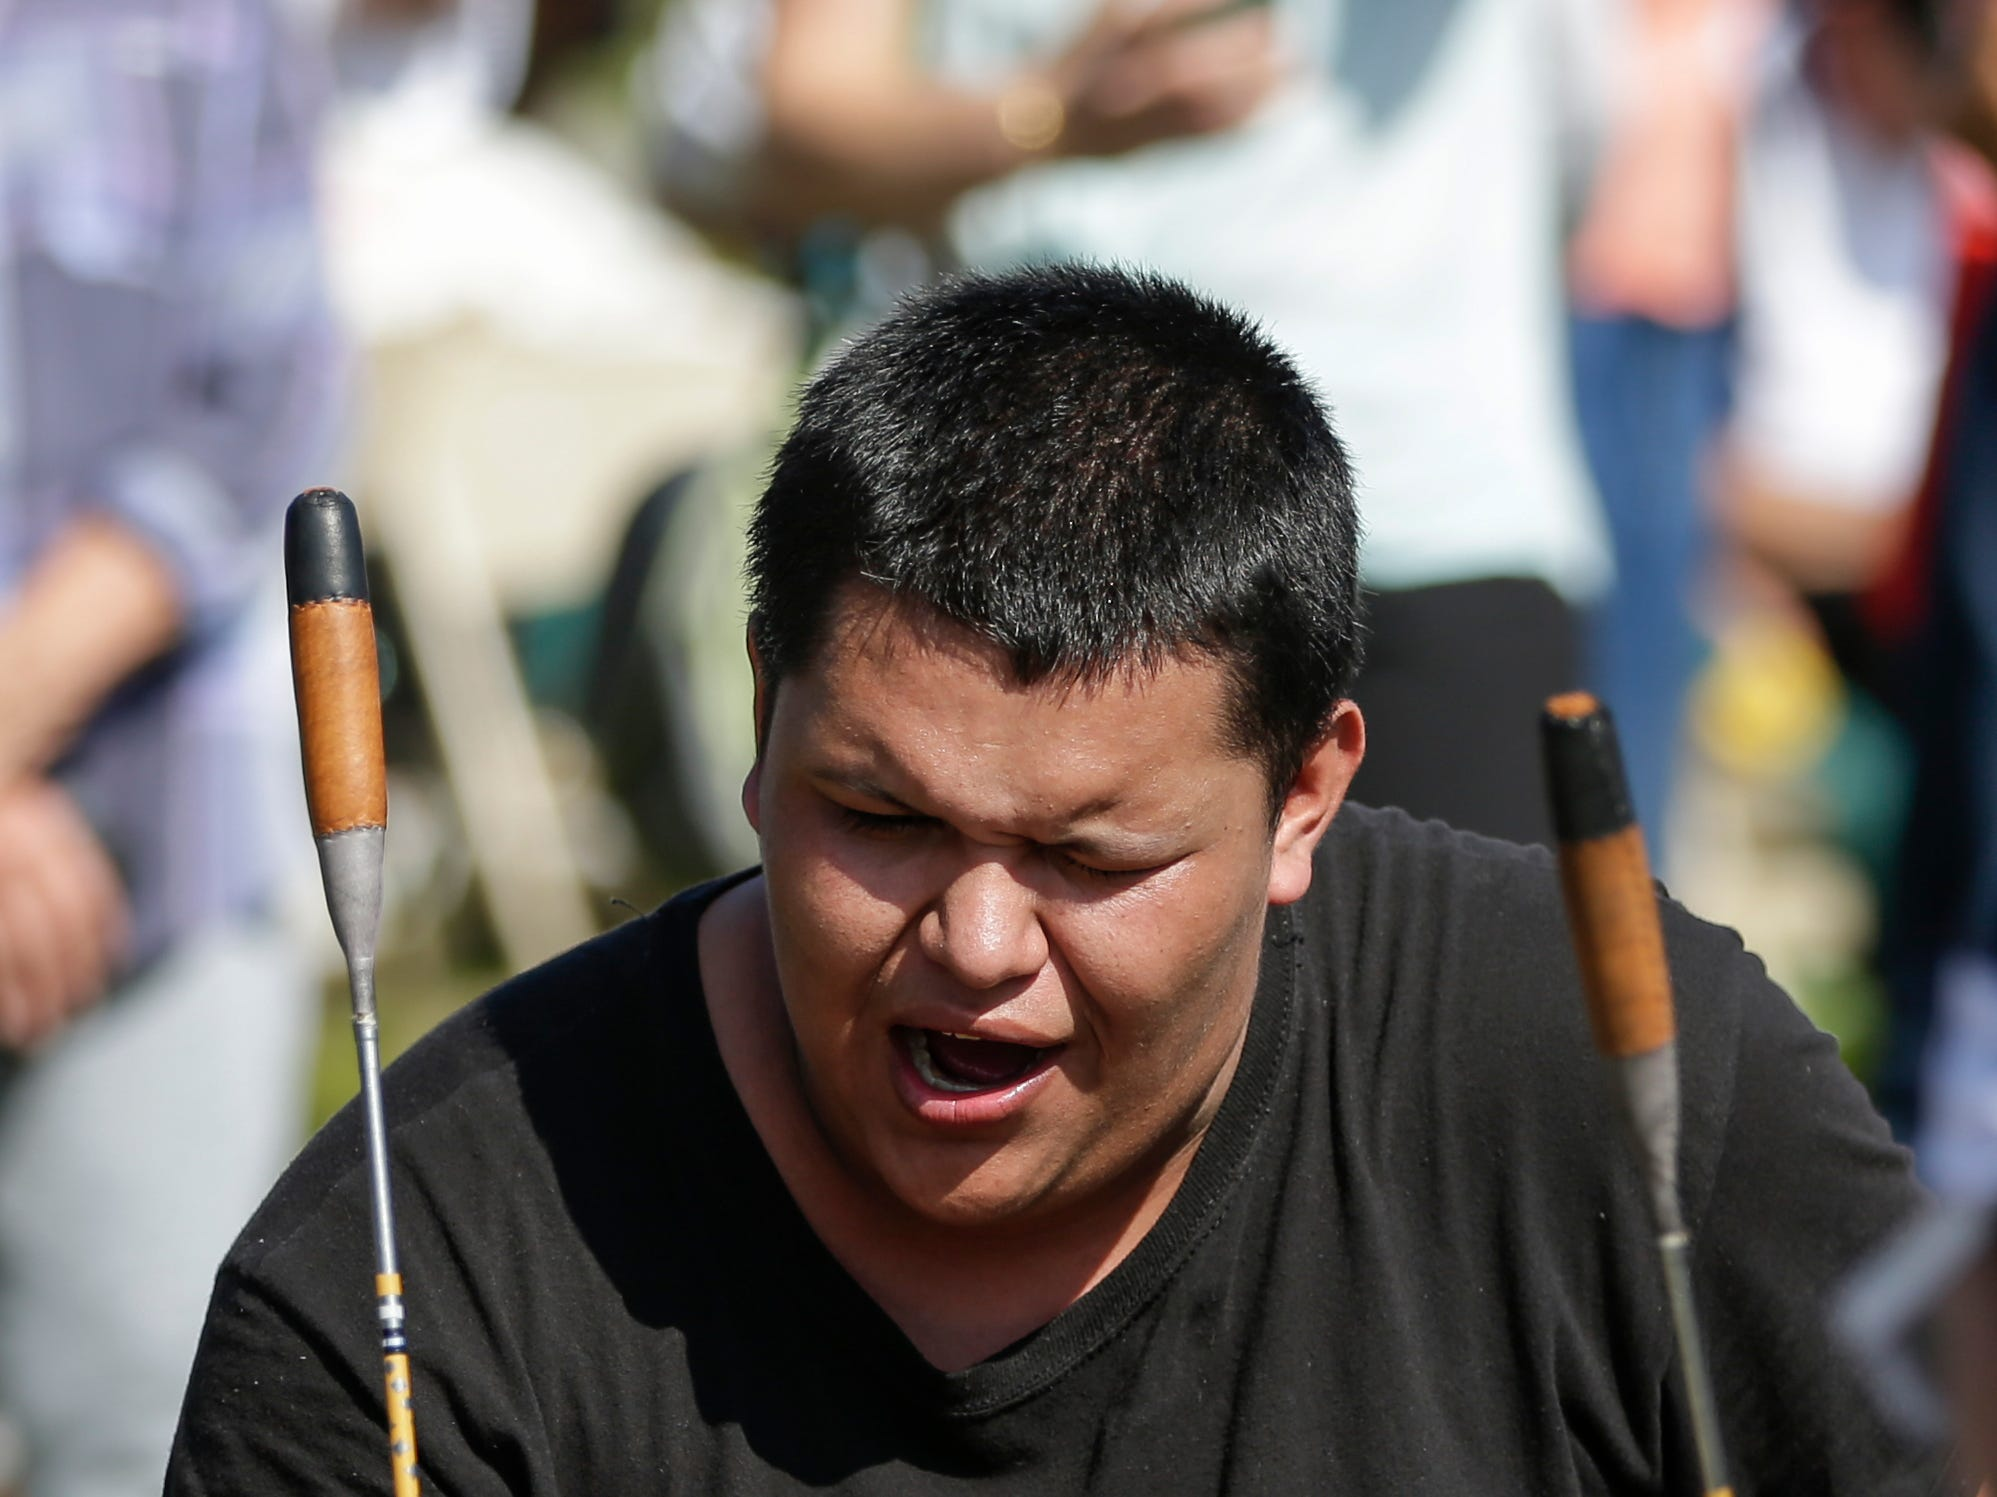 The Menominee Boys and Girls drumming circle perform during the Spirit of the Rivers monument dedication Sunday, Sept. 16, 2018, in Two Rivers, Wis.